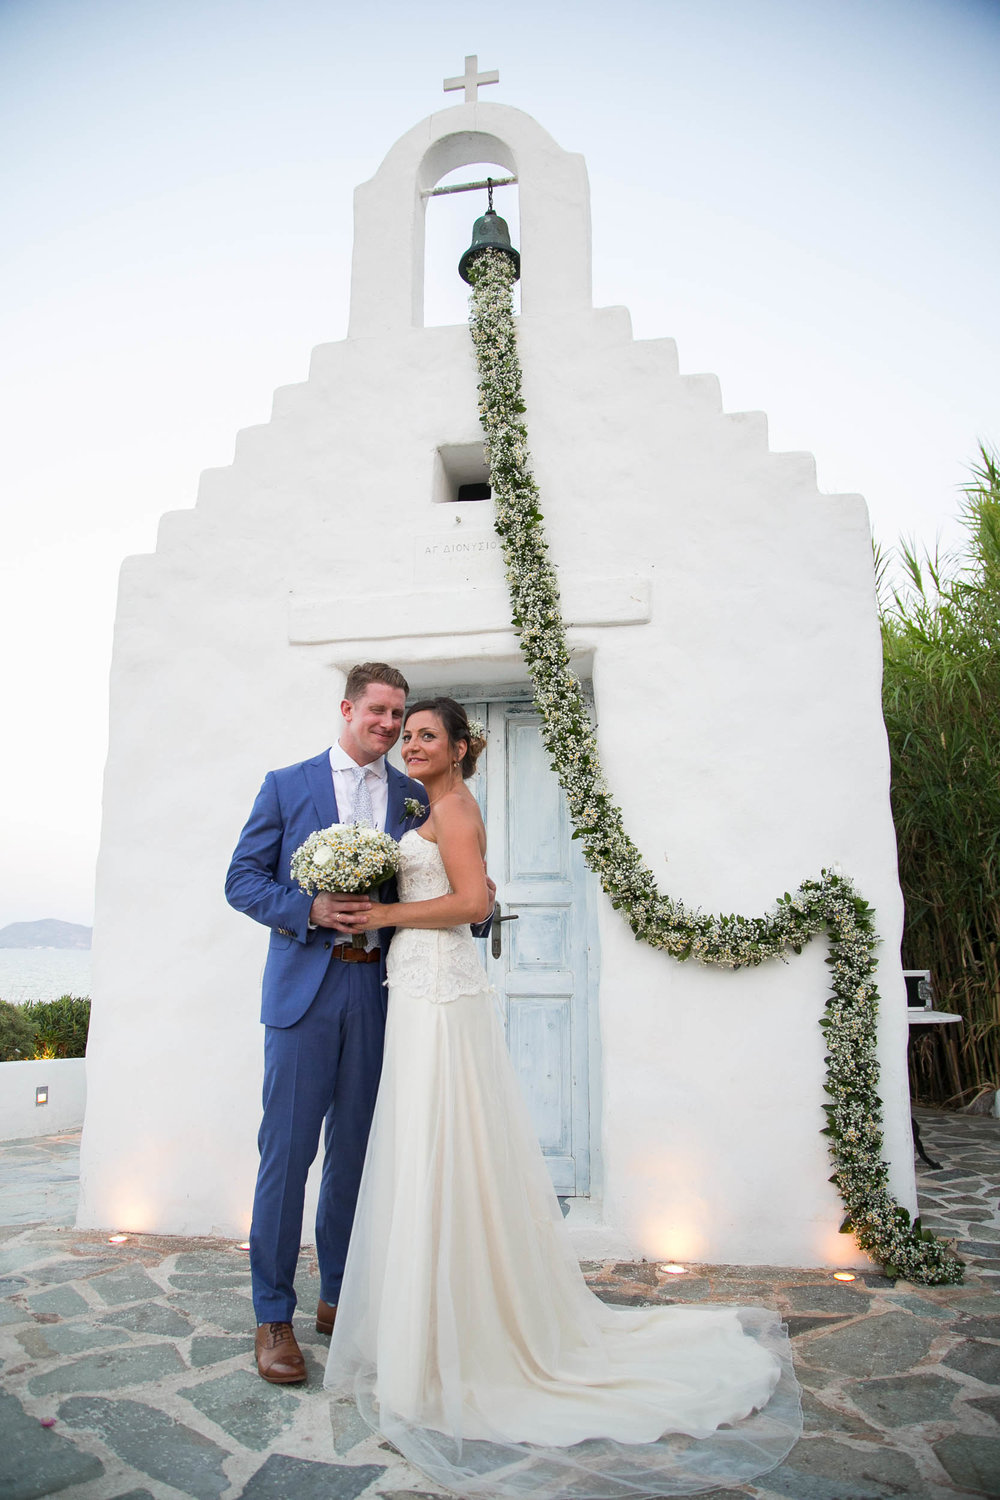 <h4>MARIANNA & ADAM</h4><h5>Wedding with a view at Island Athens</h5>